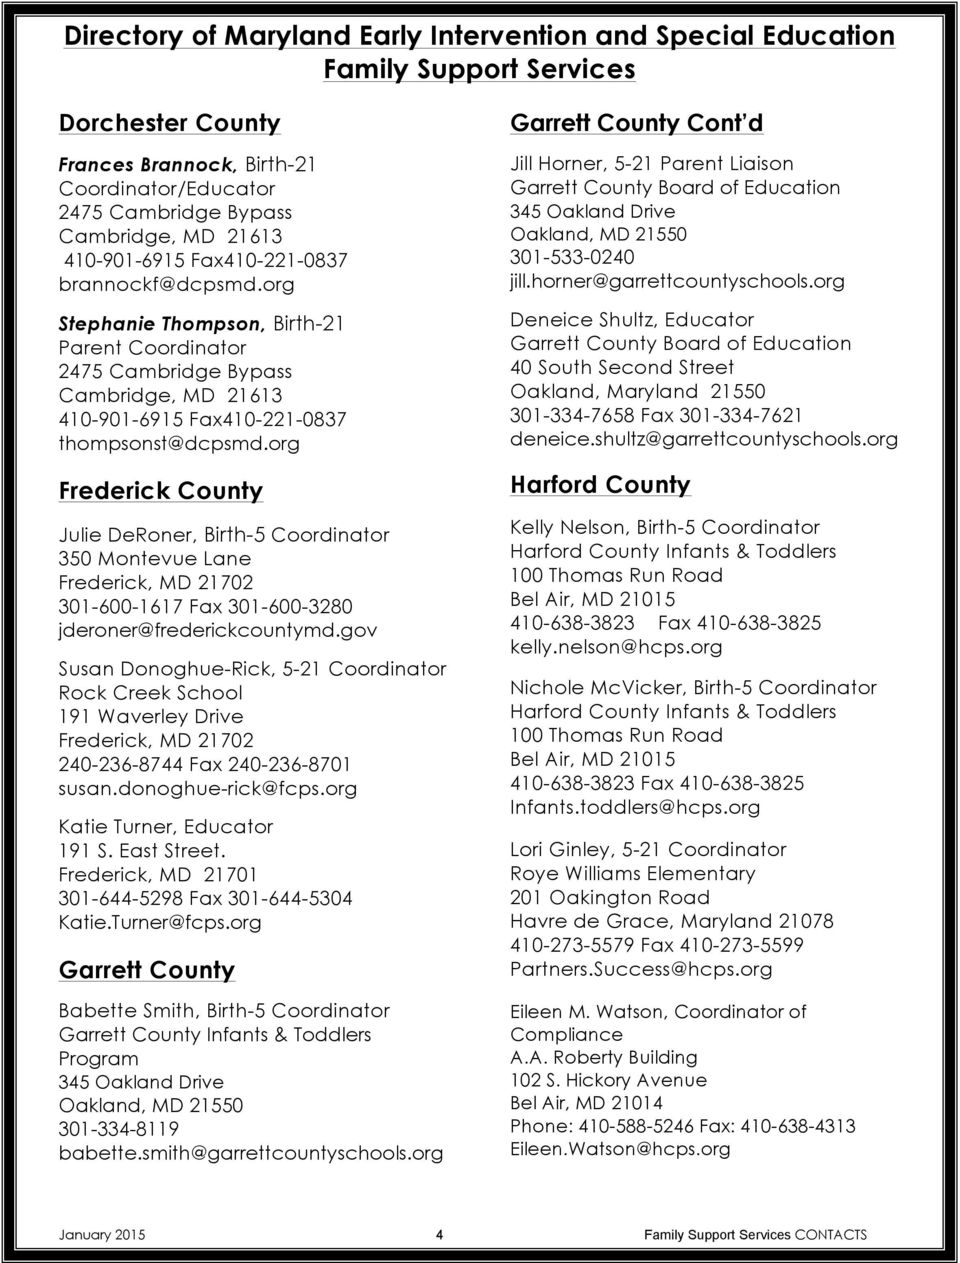 Directory of Maryland Early Intervention and Special